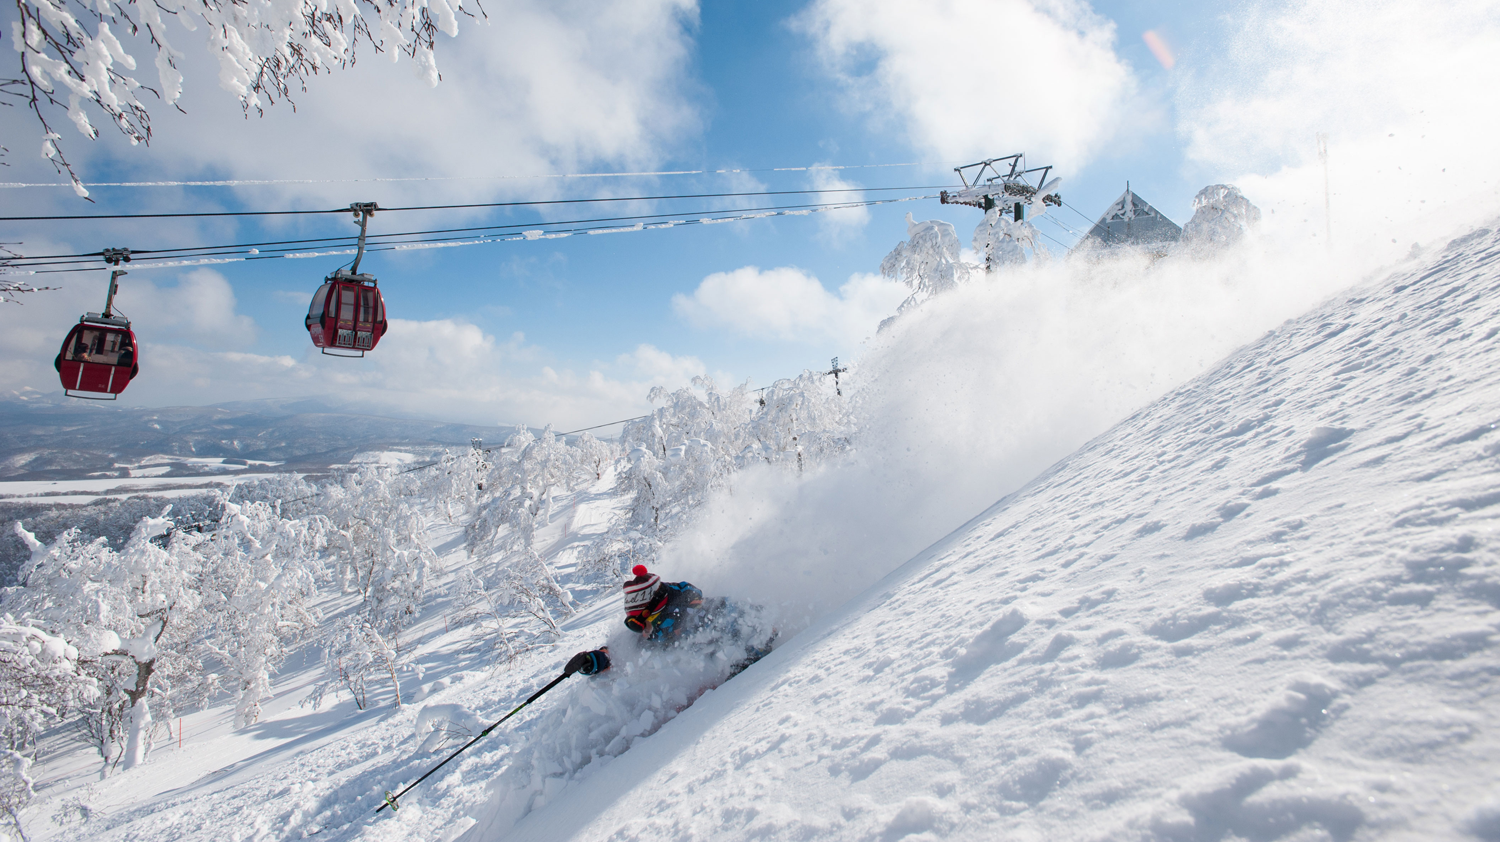 Best ski resorts in Asia for advanced skiers